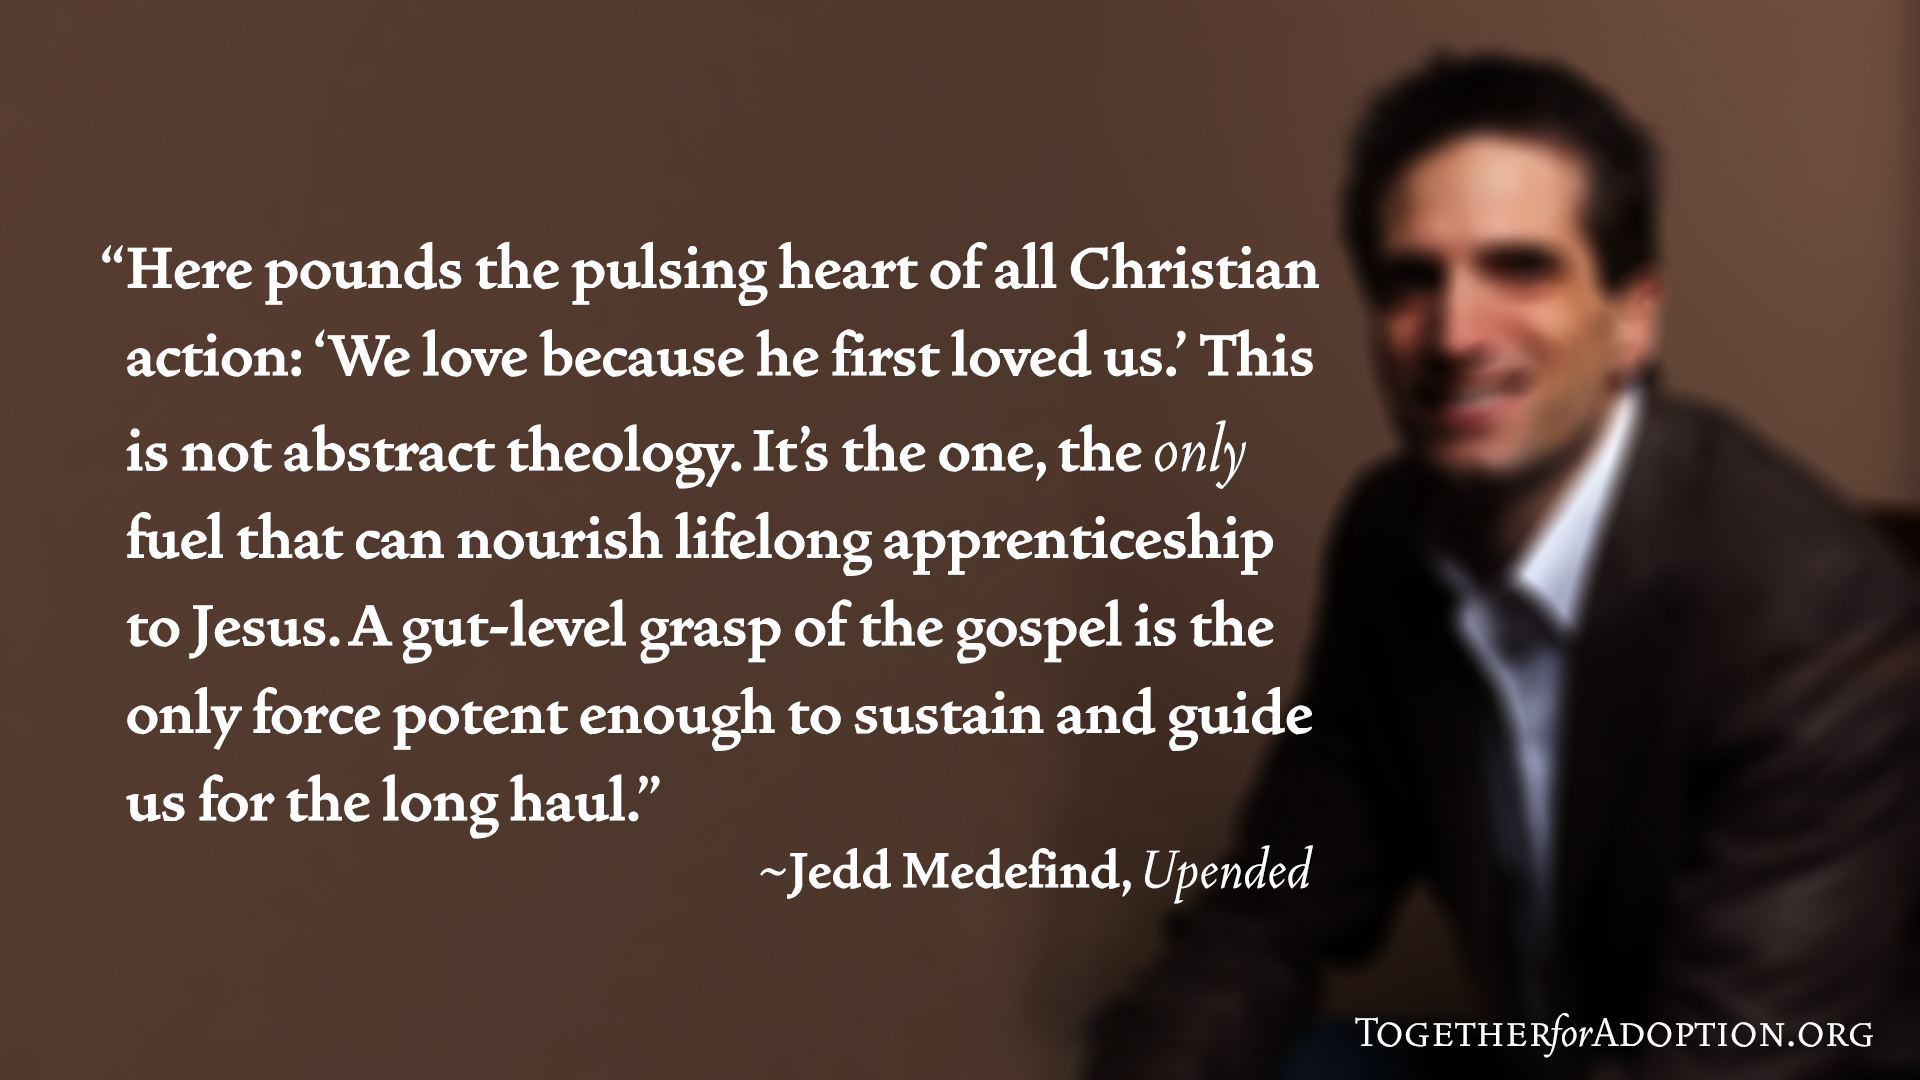 Wallpaper Jedd Medefind - gospel fuel